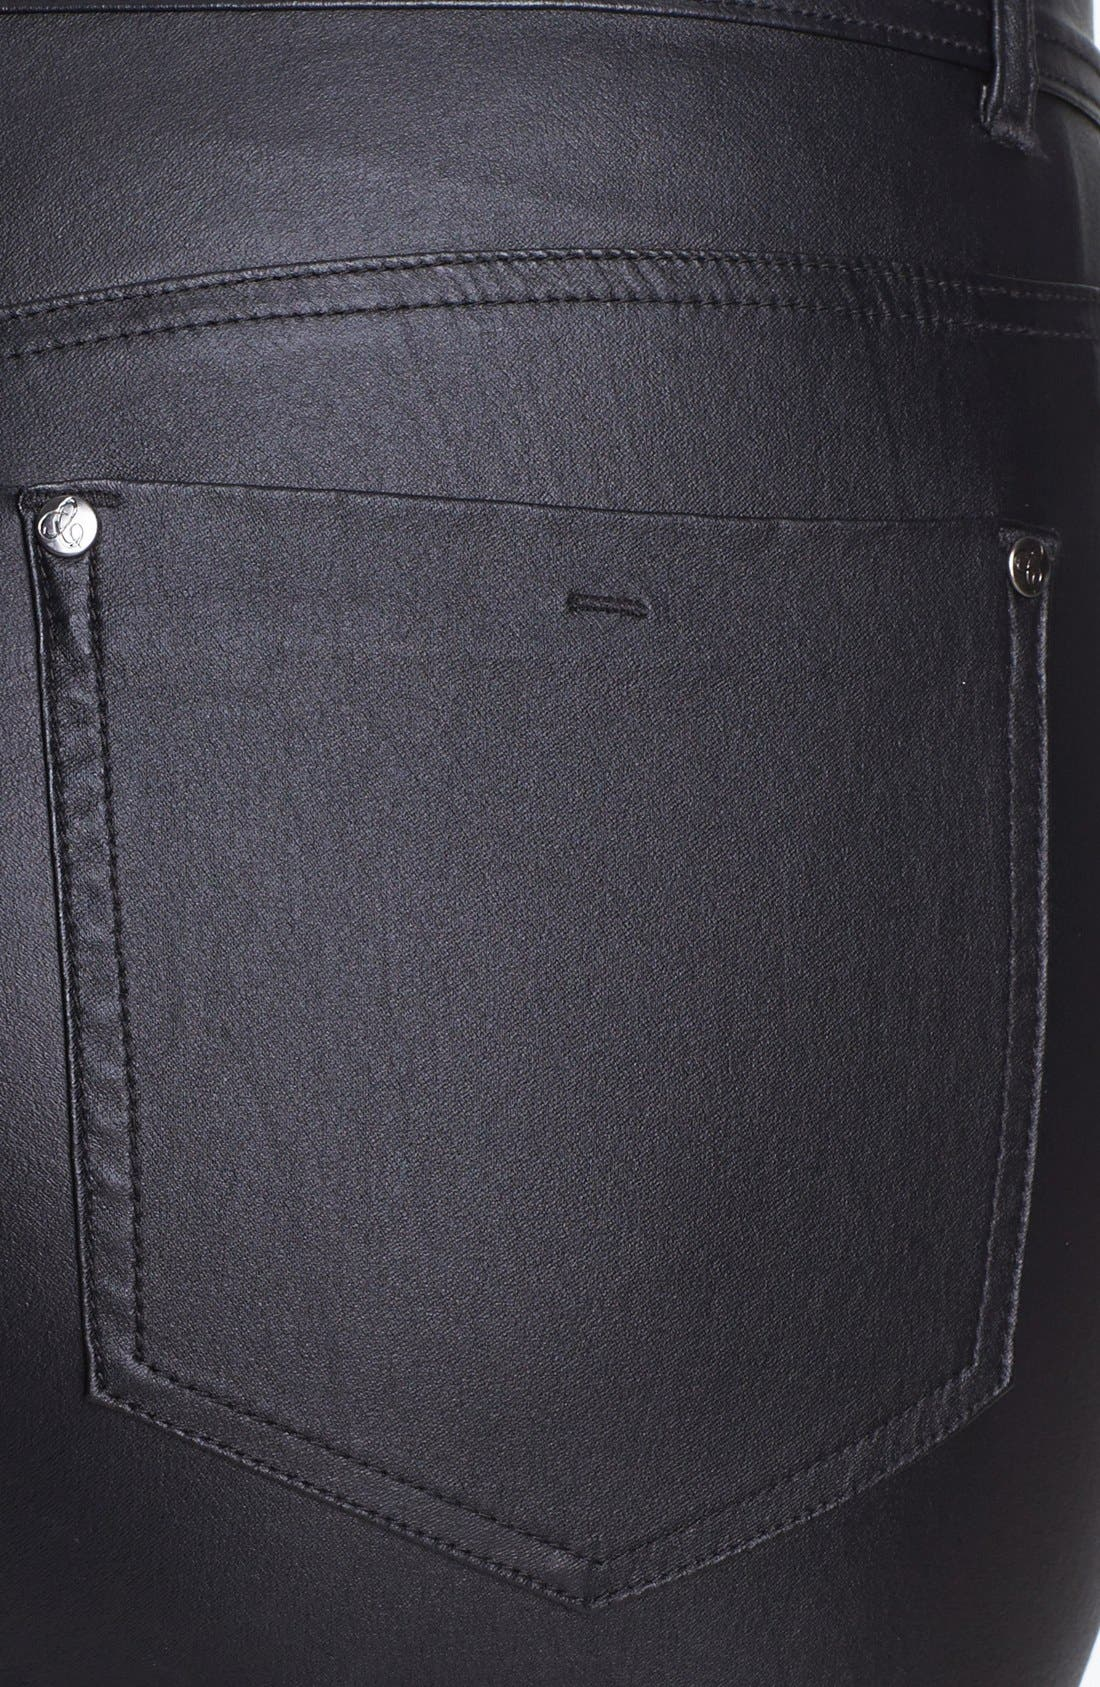 Alternate Image 3  - City Chic Coated Stretch Jeans (Plus Size)